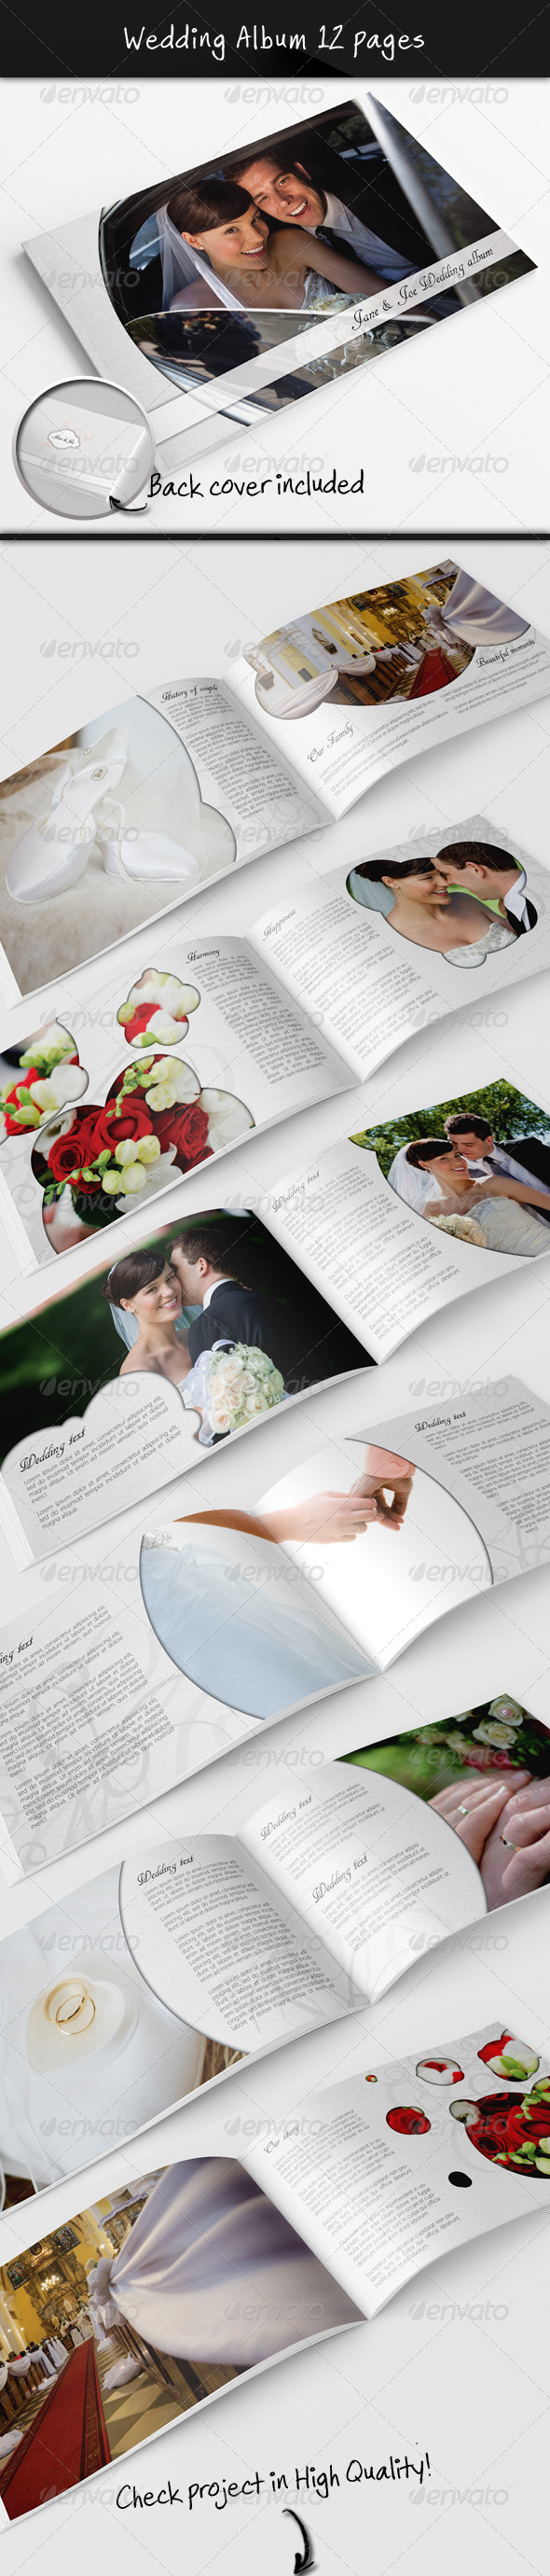 Wedding Photo Album - Photo Albums Print Templates